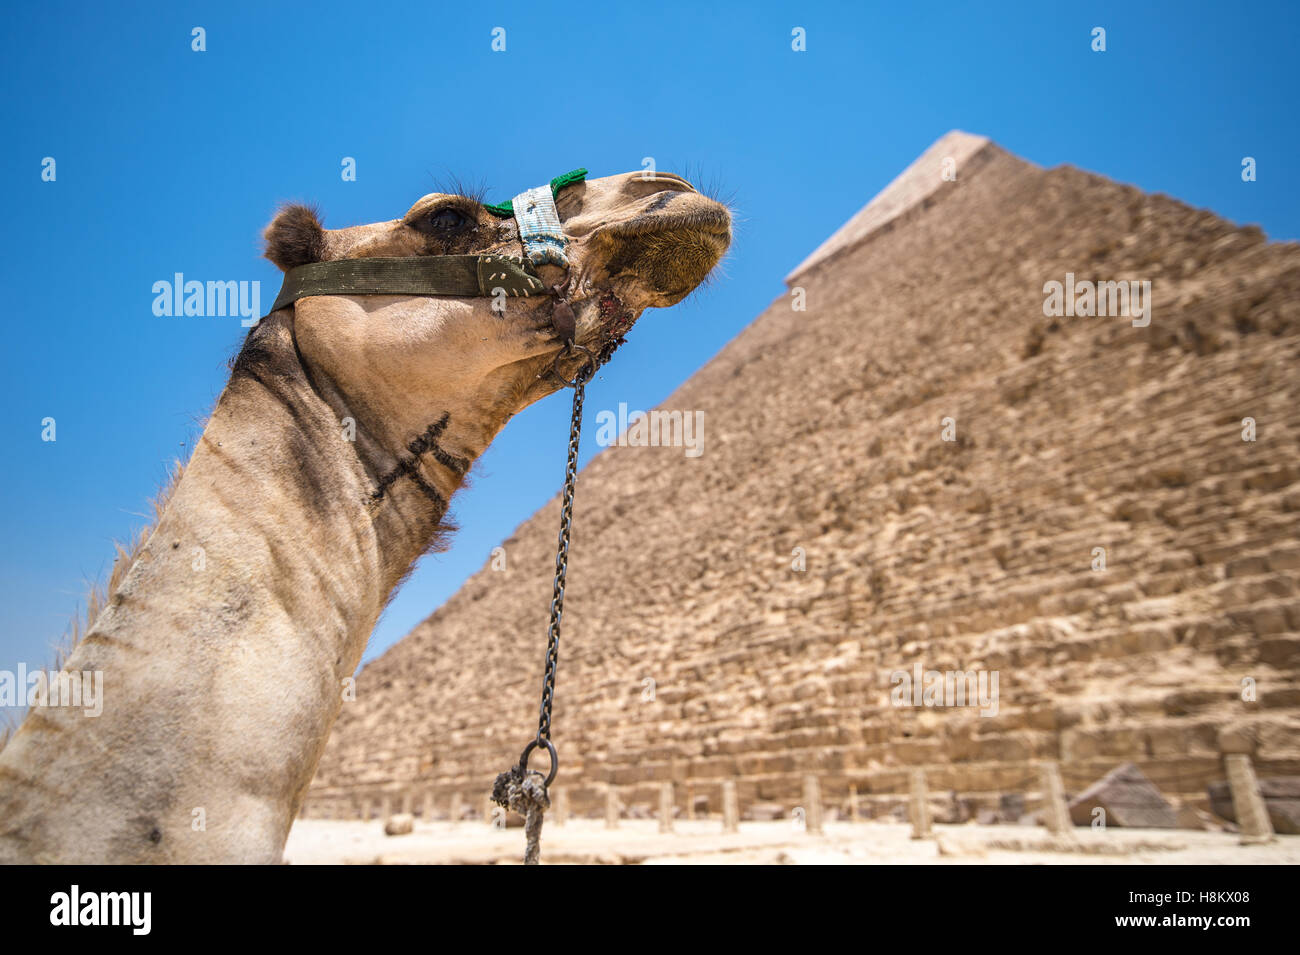 Cairo, Egypt Camel resting in the desert with the Great Pyramids of Giza in the background. This is The Pyramid - Stock Image